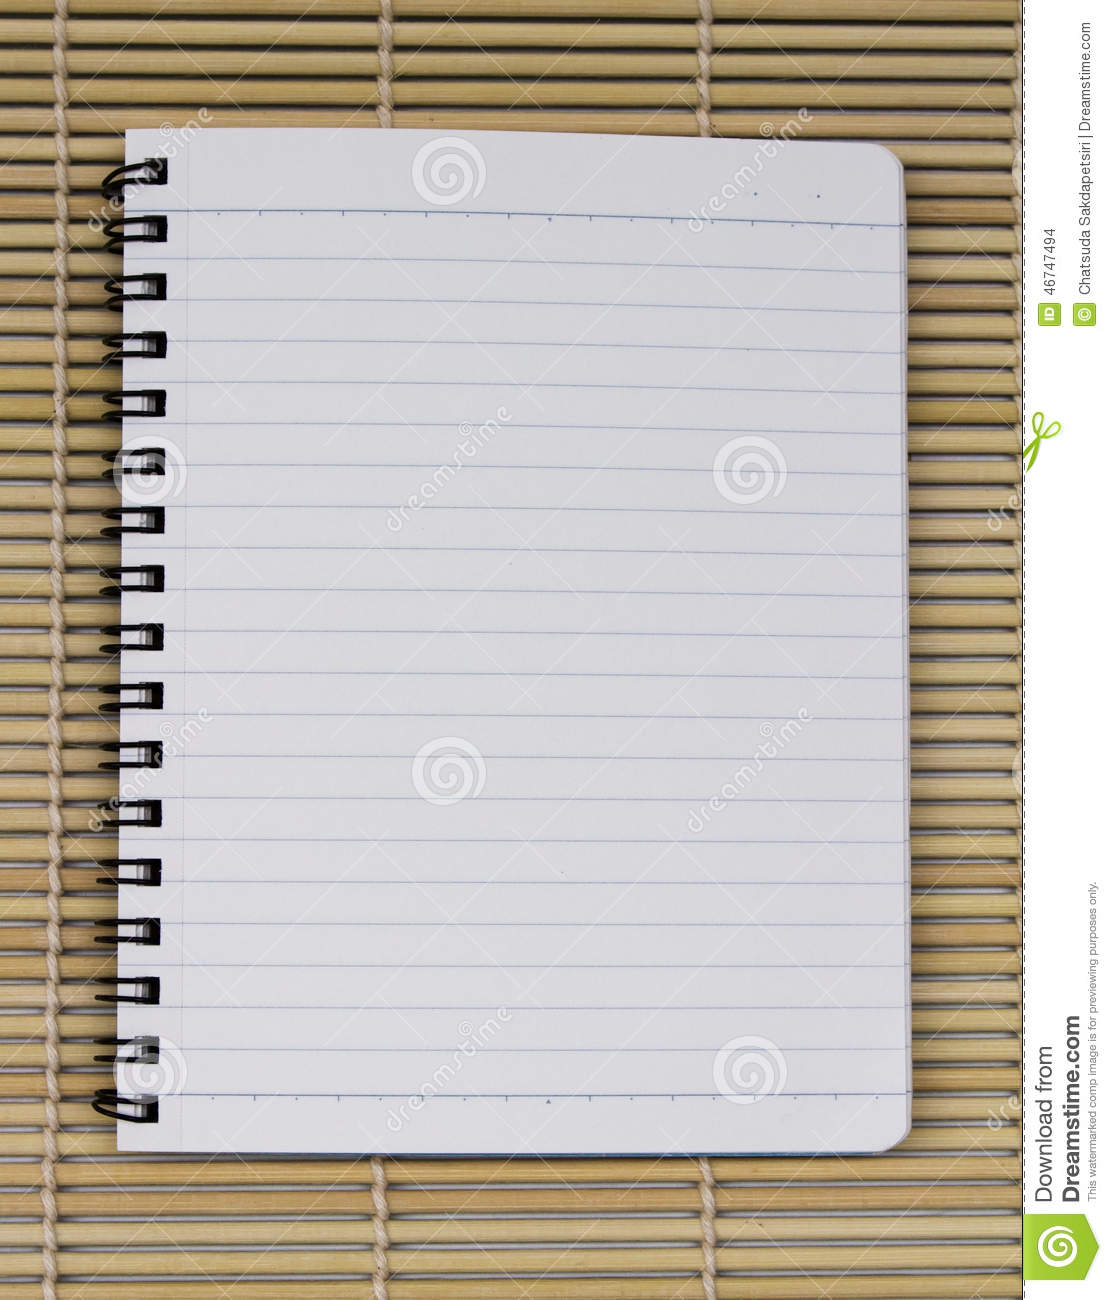 Blank White Blue Line Paper Realistic Spiral Notepad